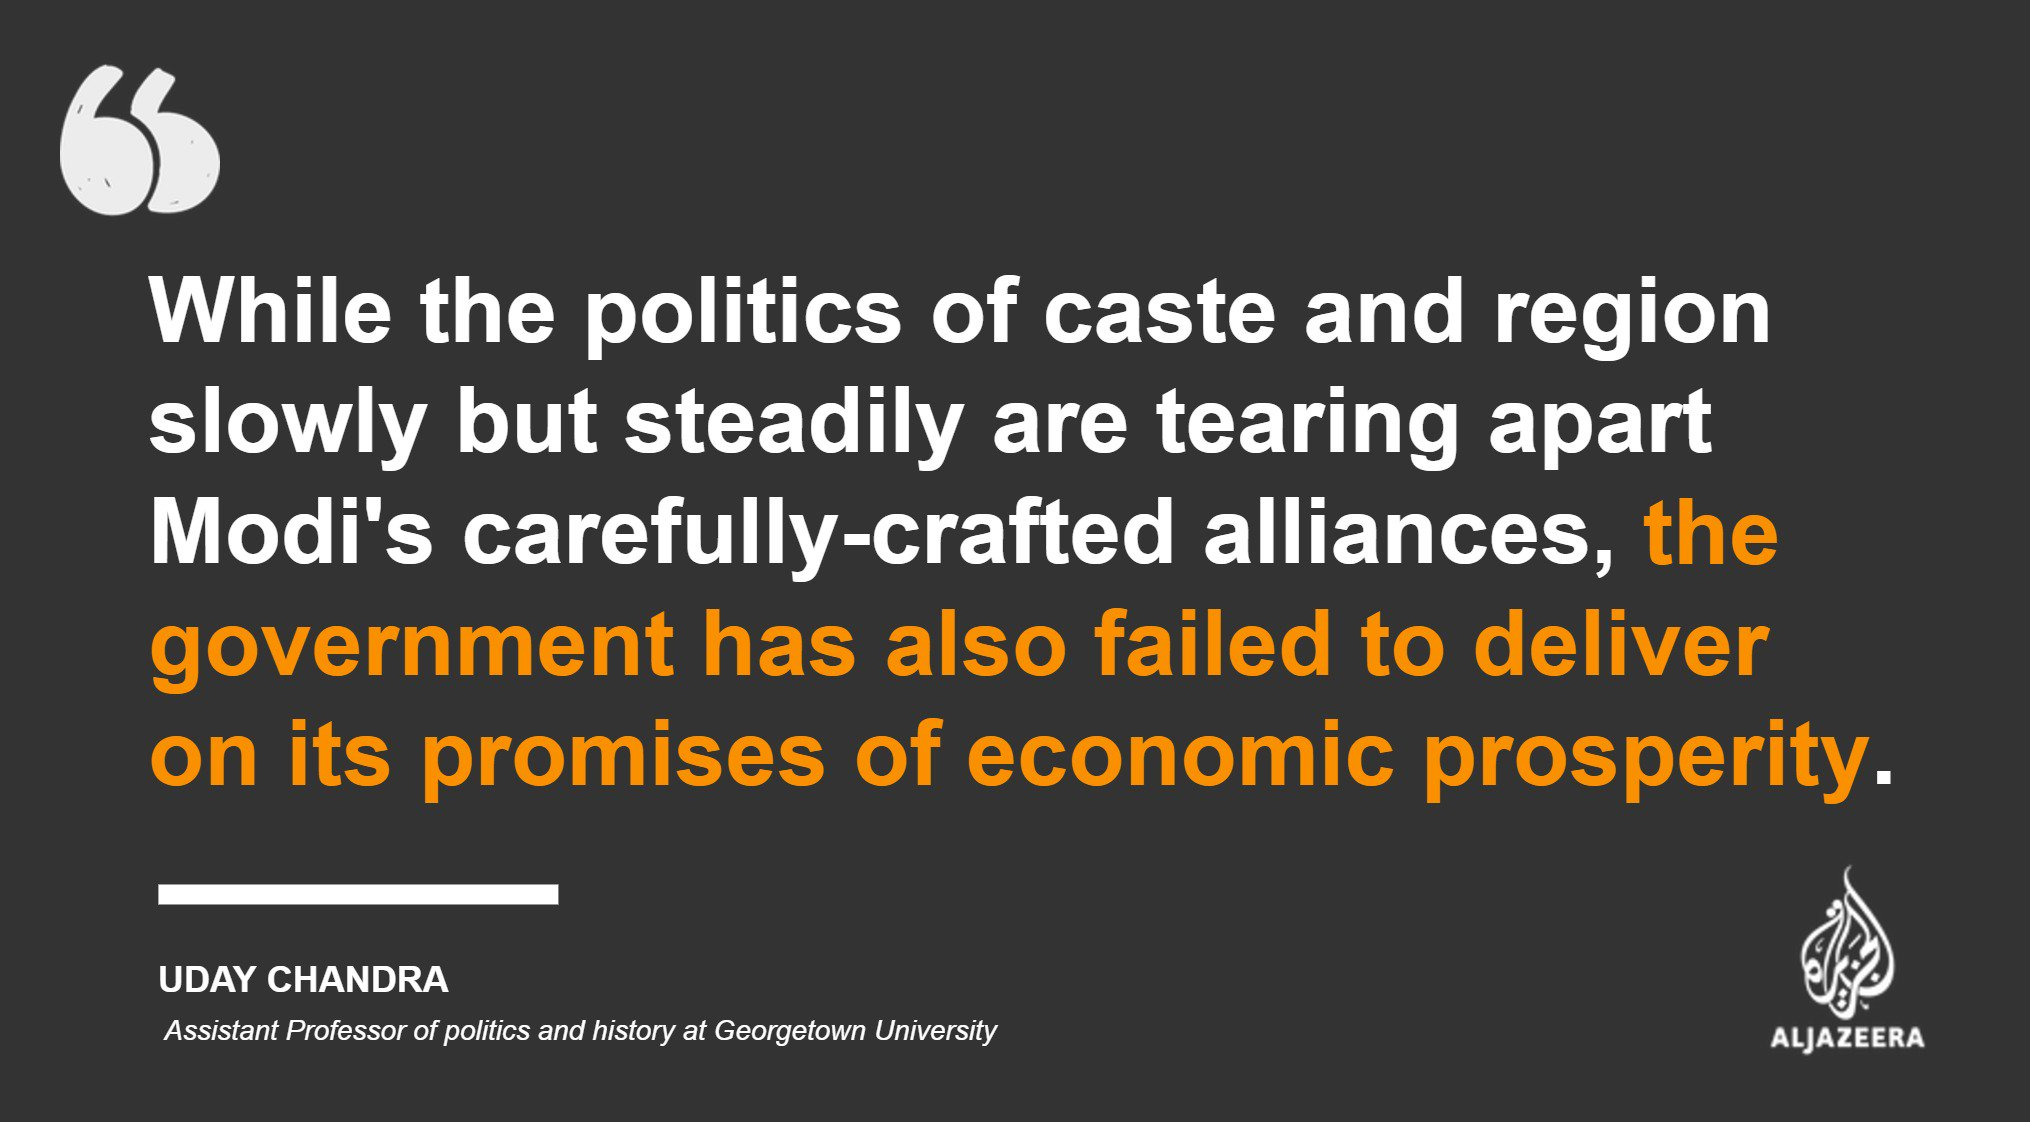 Modi's Hindu nationalism is stumbling https://t.co/msDD6eXb5K — #AJOpinion, by @ChandraUday https://t.co/2w5nNIgsLw